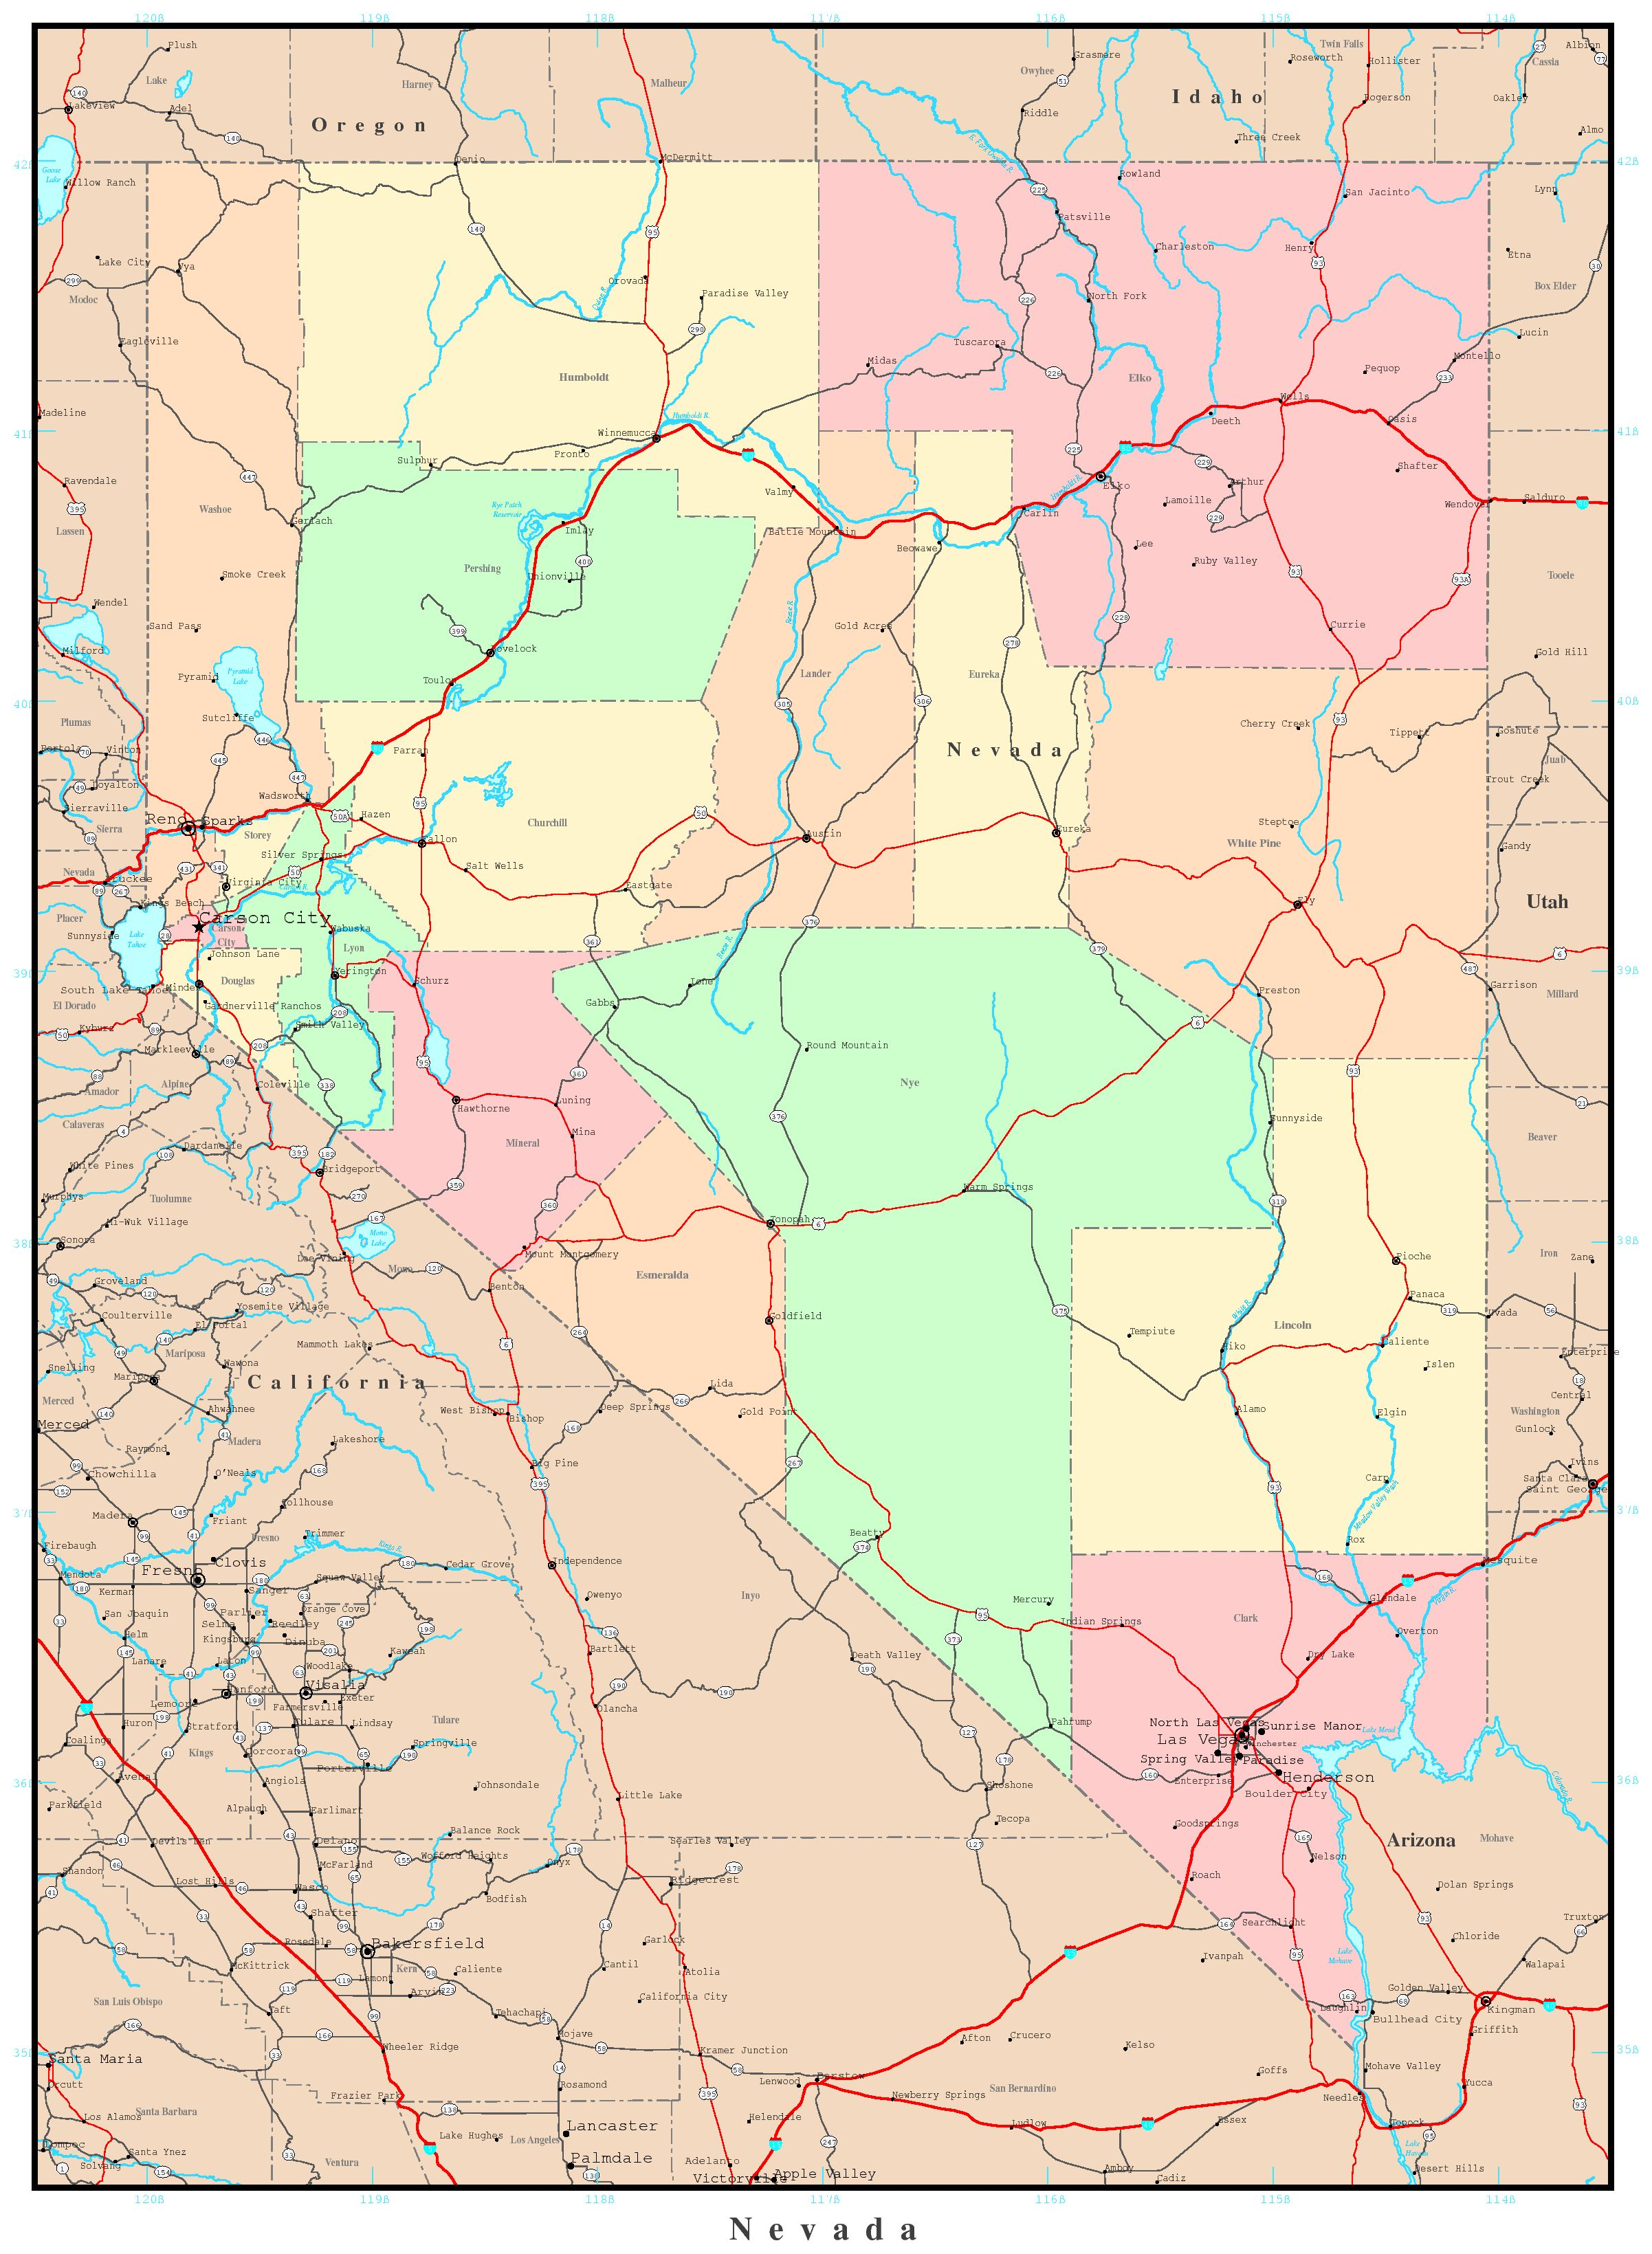 Nevada Political Map - Map of nv